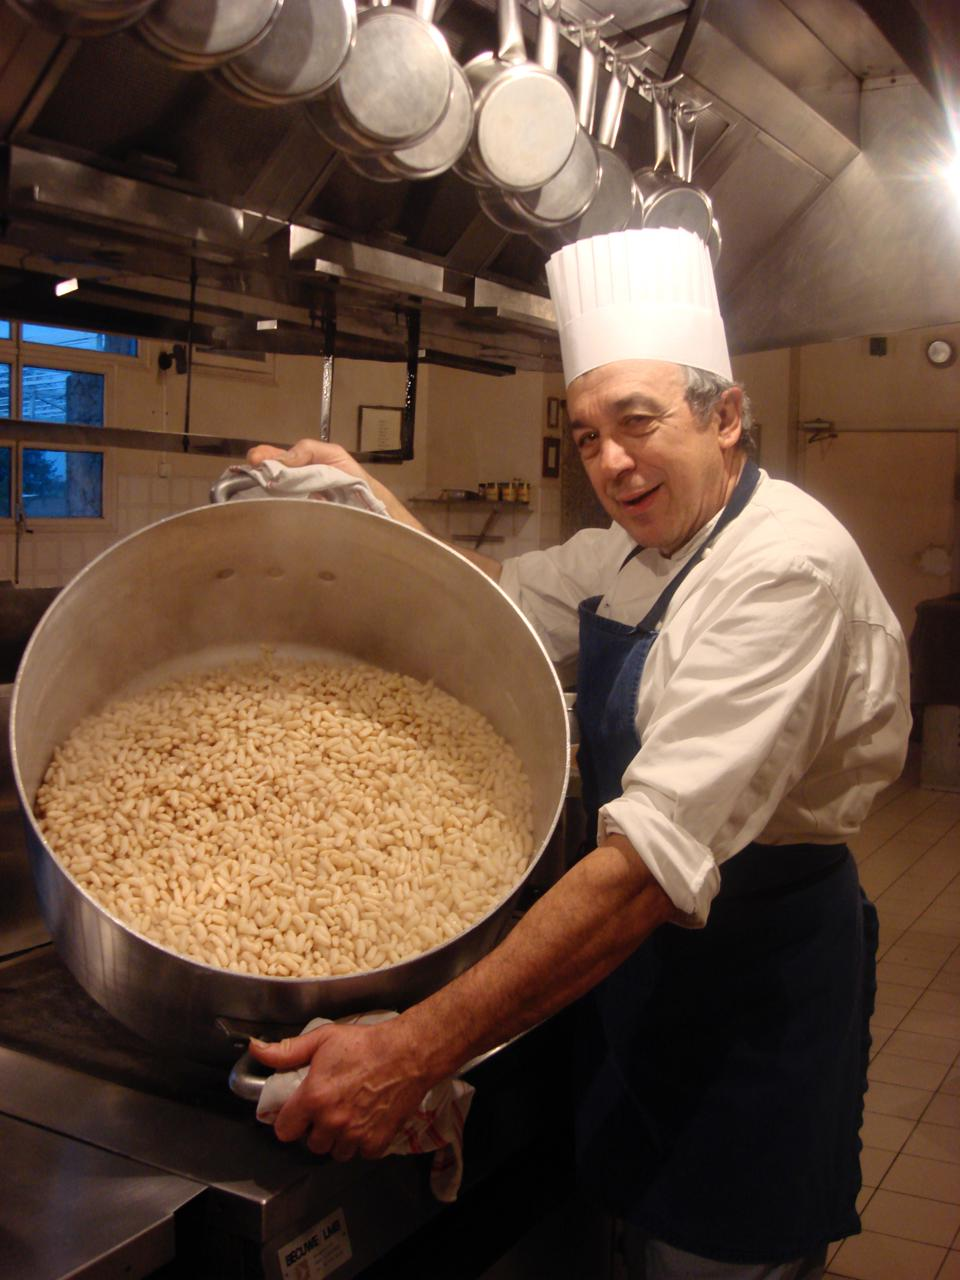 Twice a week, Chef Jean-Claude Rodriguez prepares the beans that will serve as the base for his legendary cassoulet